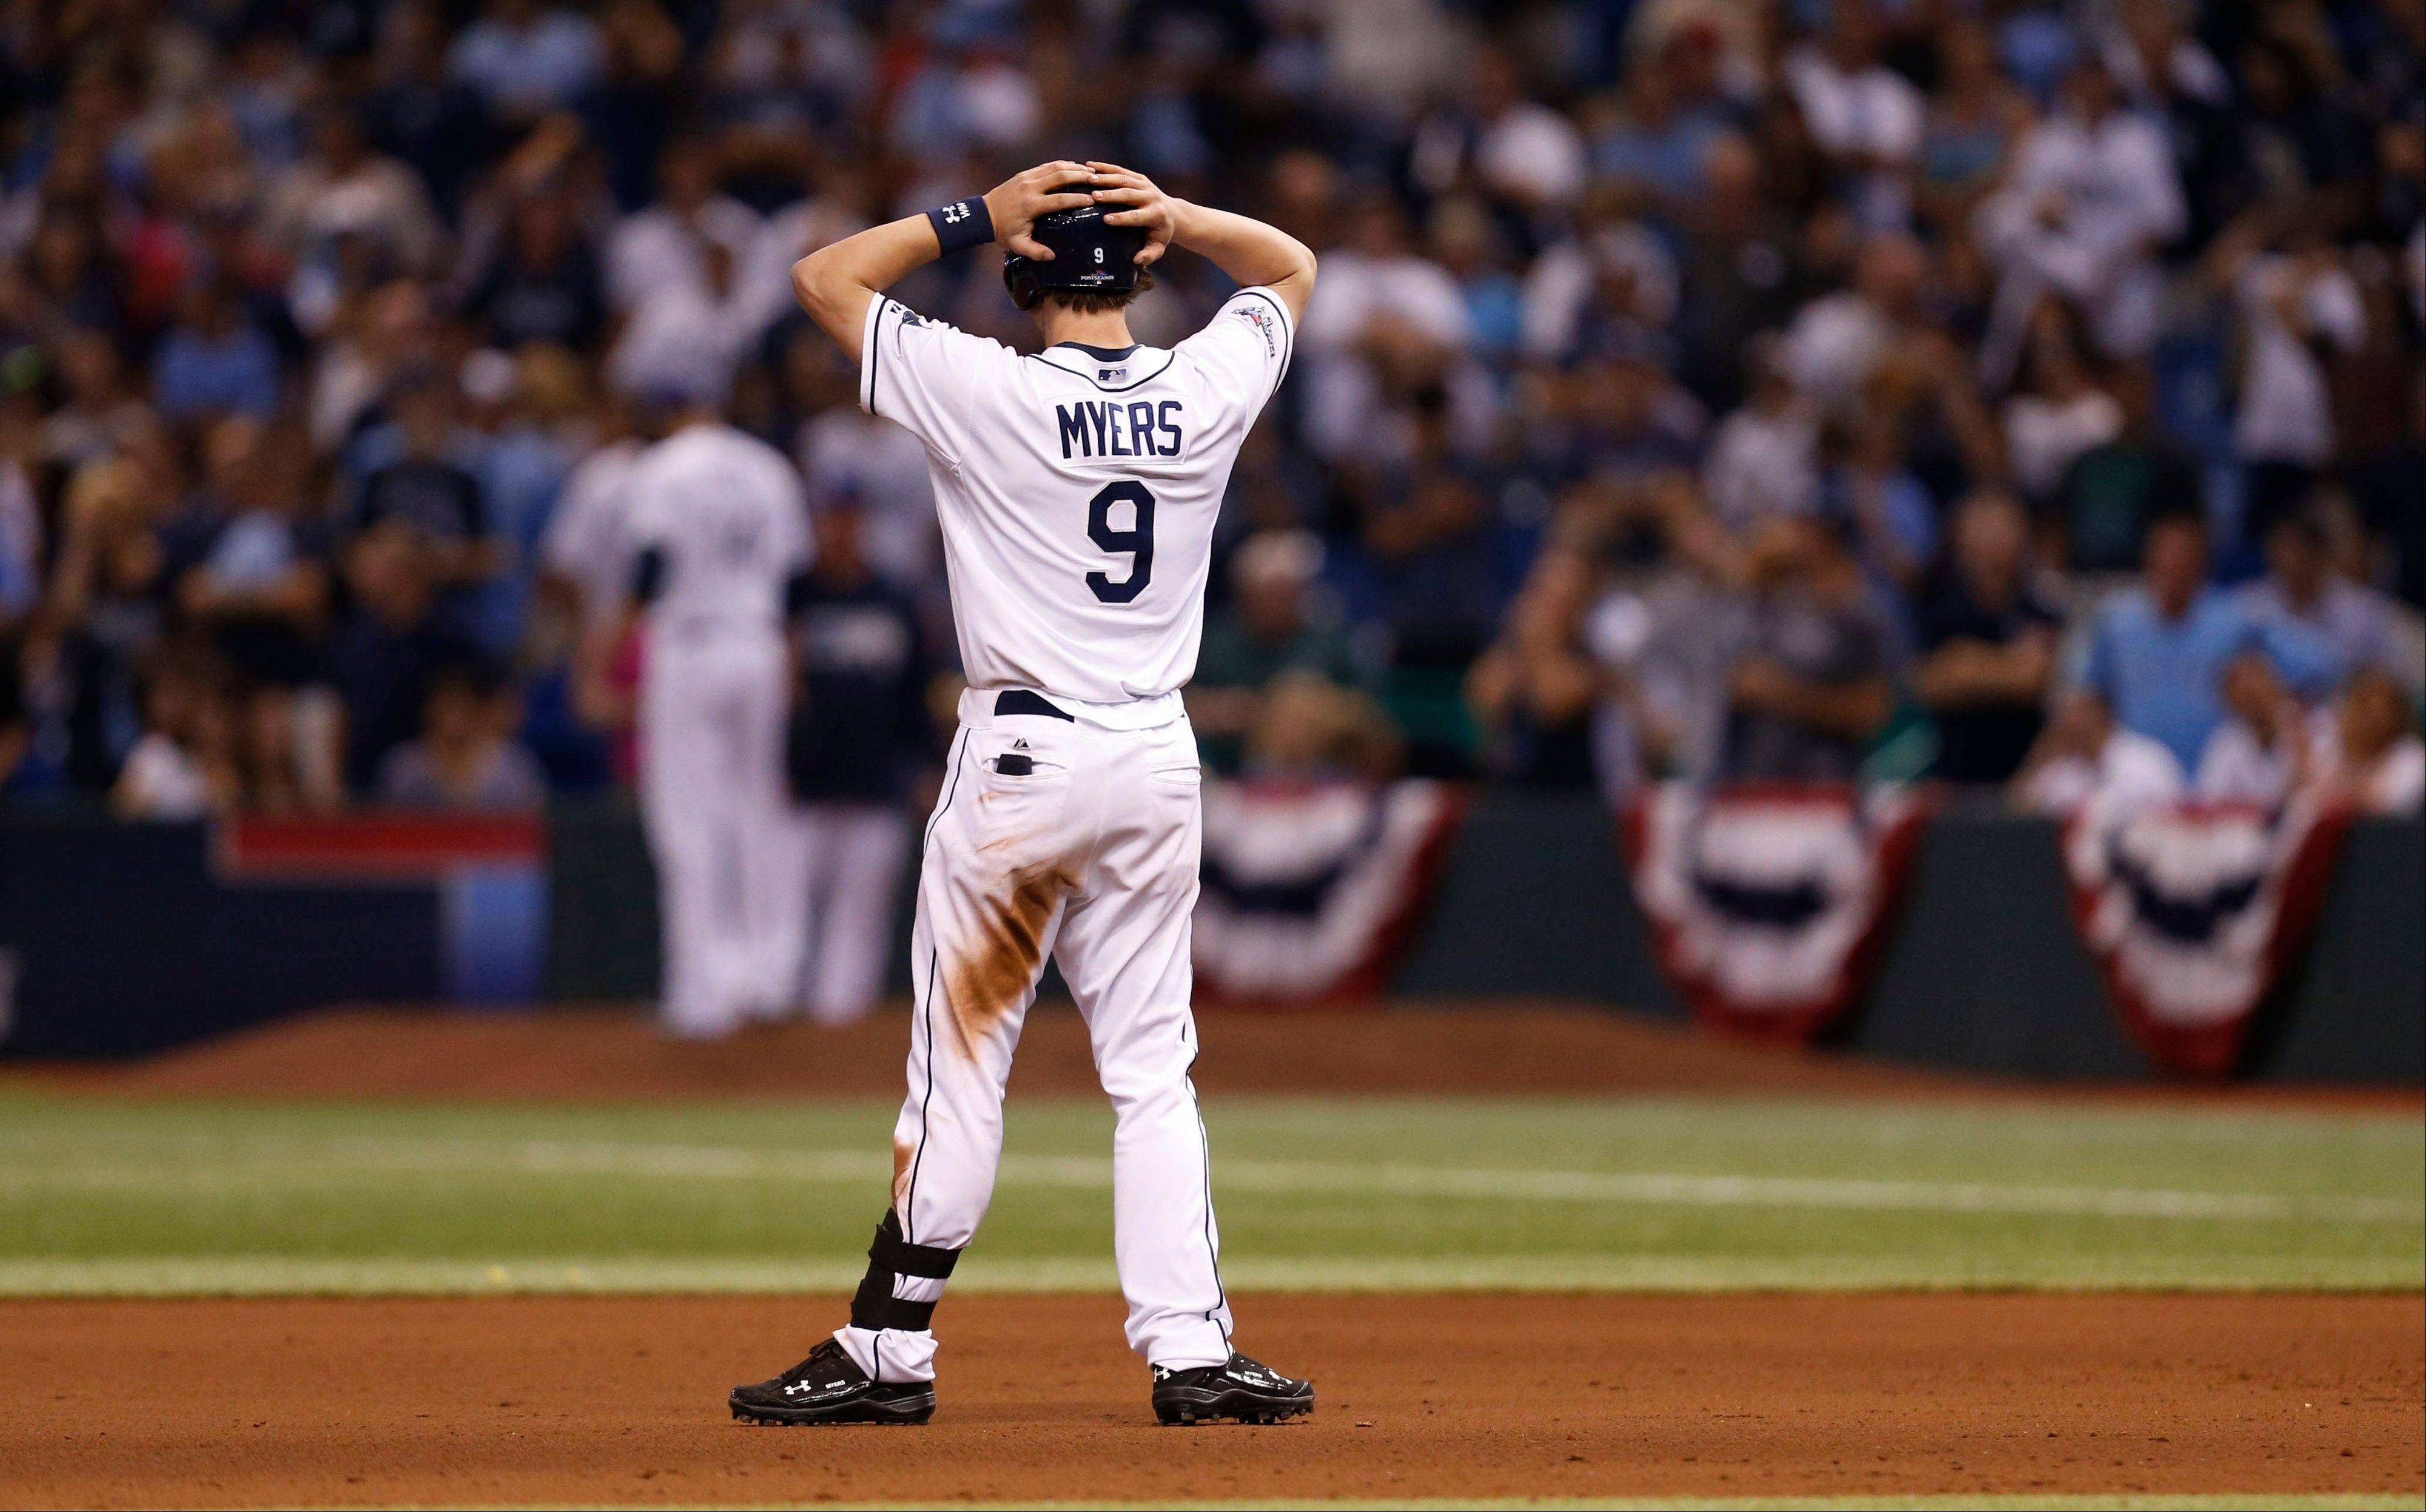 Tampa Bay right fielder Wil Myers stands on the field in the ninth inning in Game 4. The Rays' season ended Tuesday night.